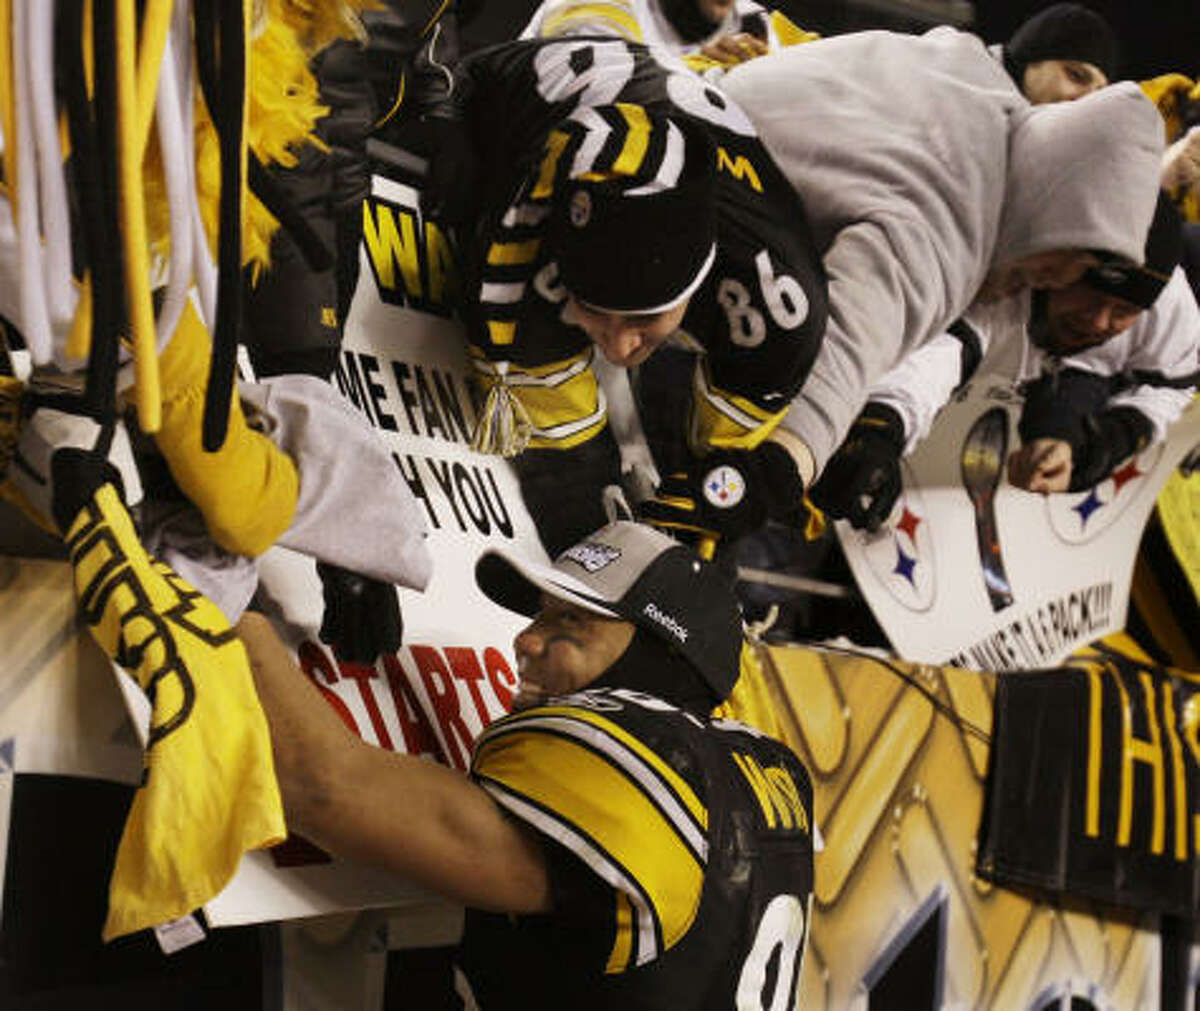 Steelers wide receiver Hines Ward celebrates with fans after the win.